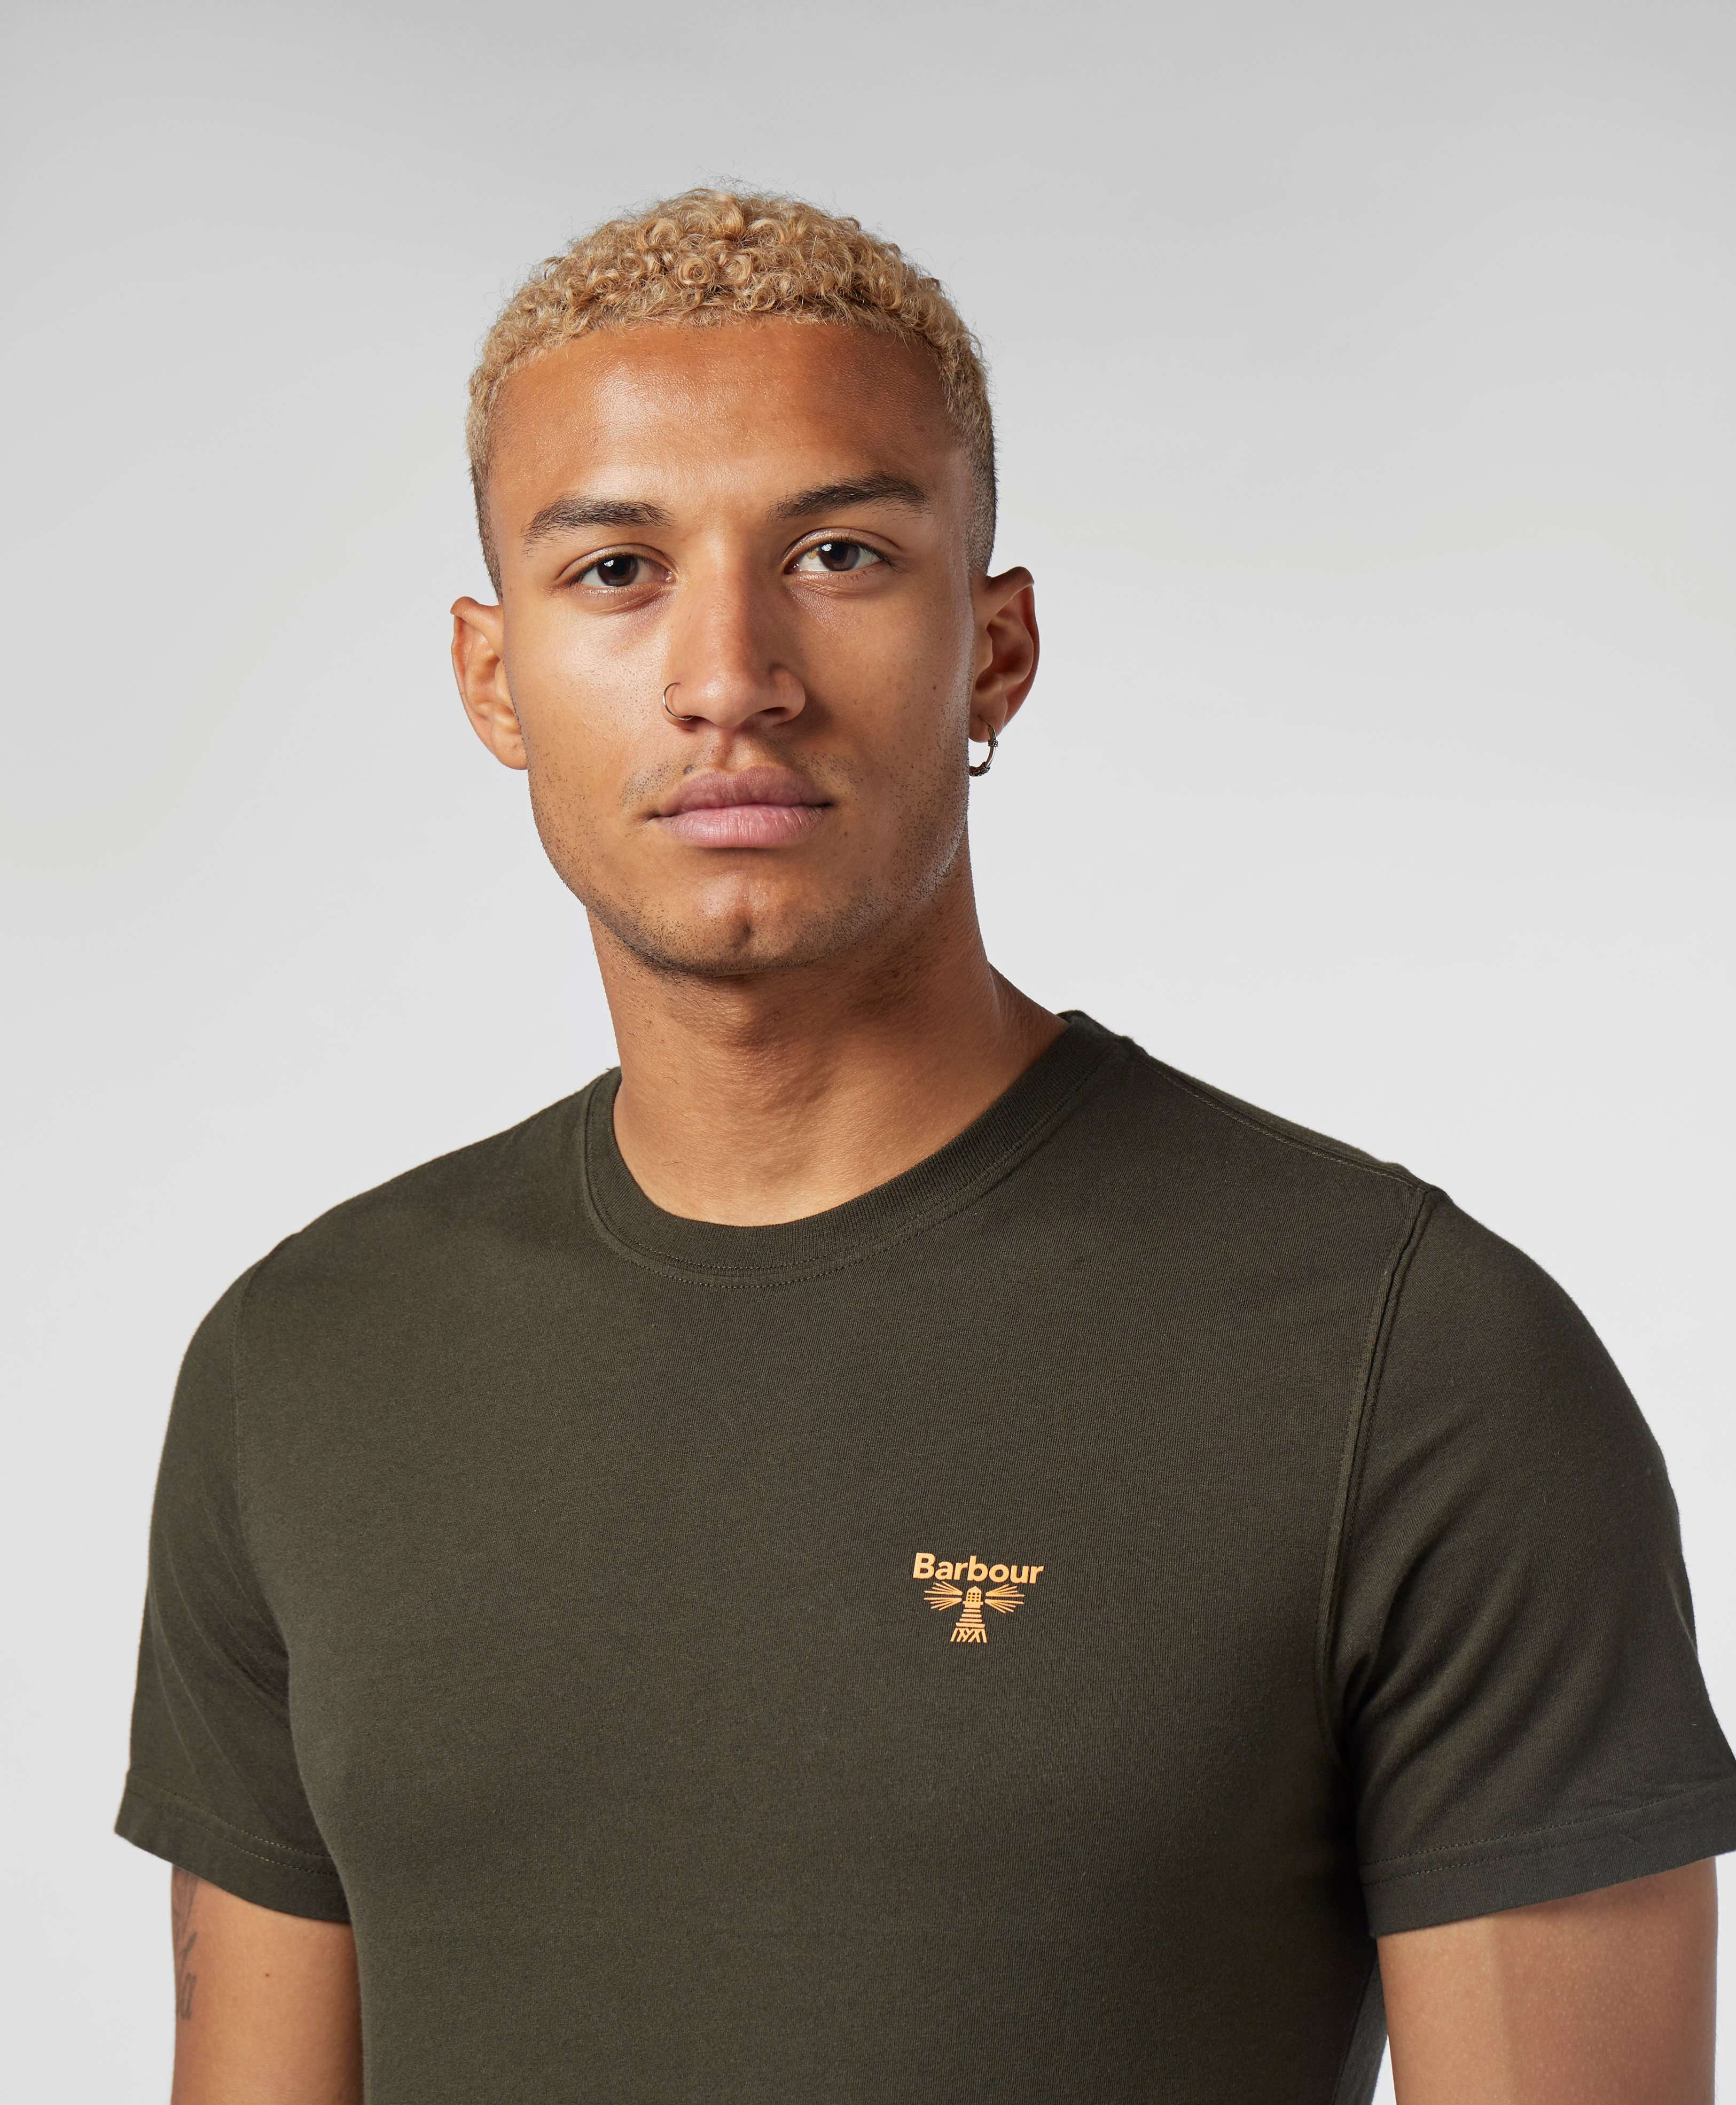 Barbour Beacon Small Logo Short Sleeve T-Shirt